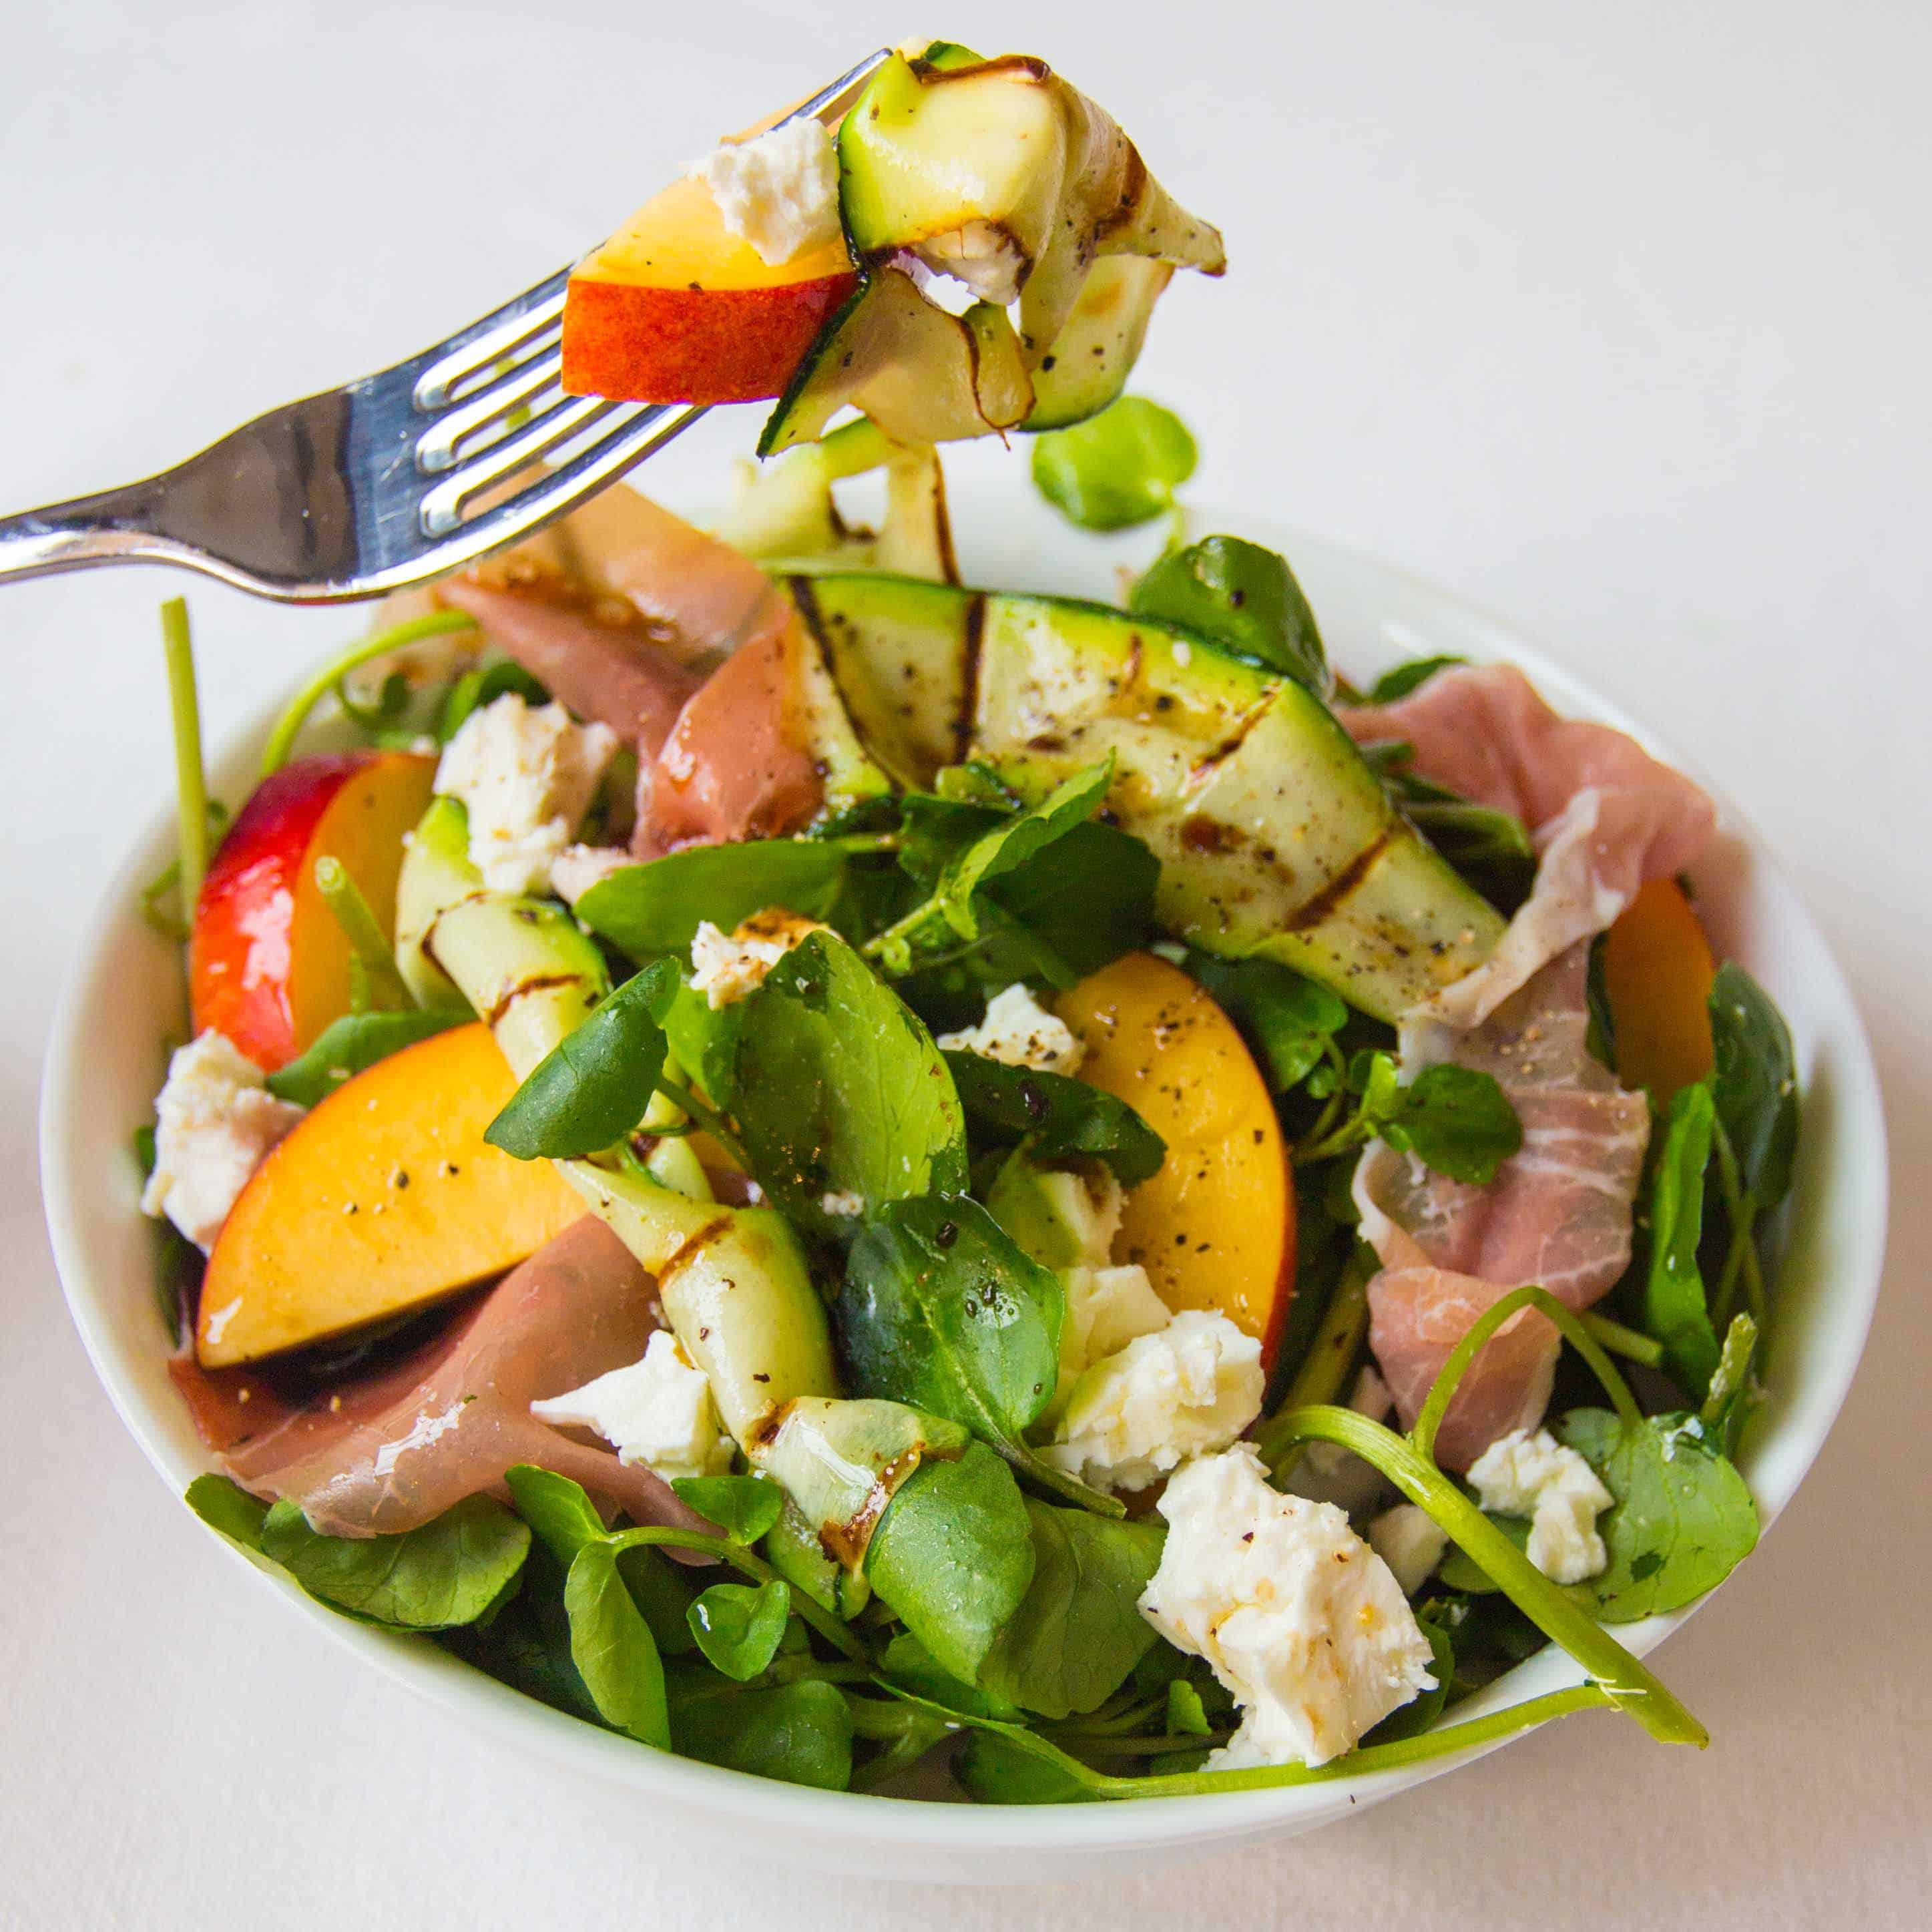 Prosciutto, feta and nectarine salad with griddled courgette - the perfect summer salad!